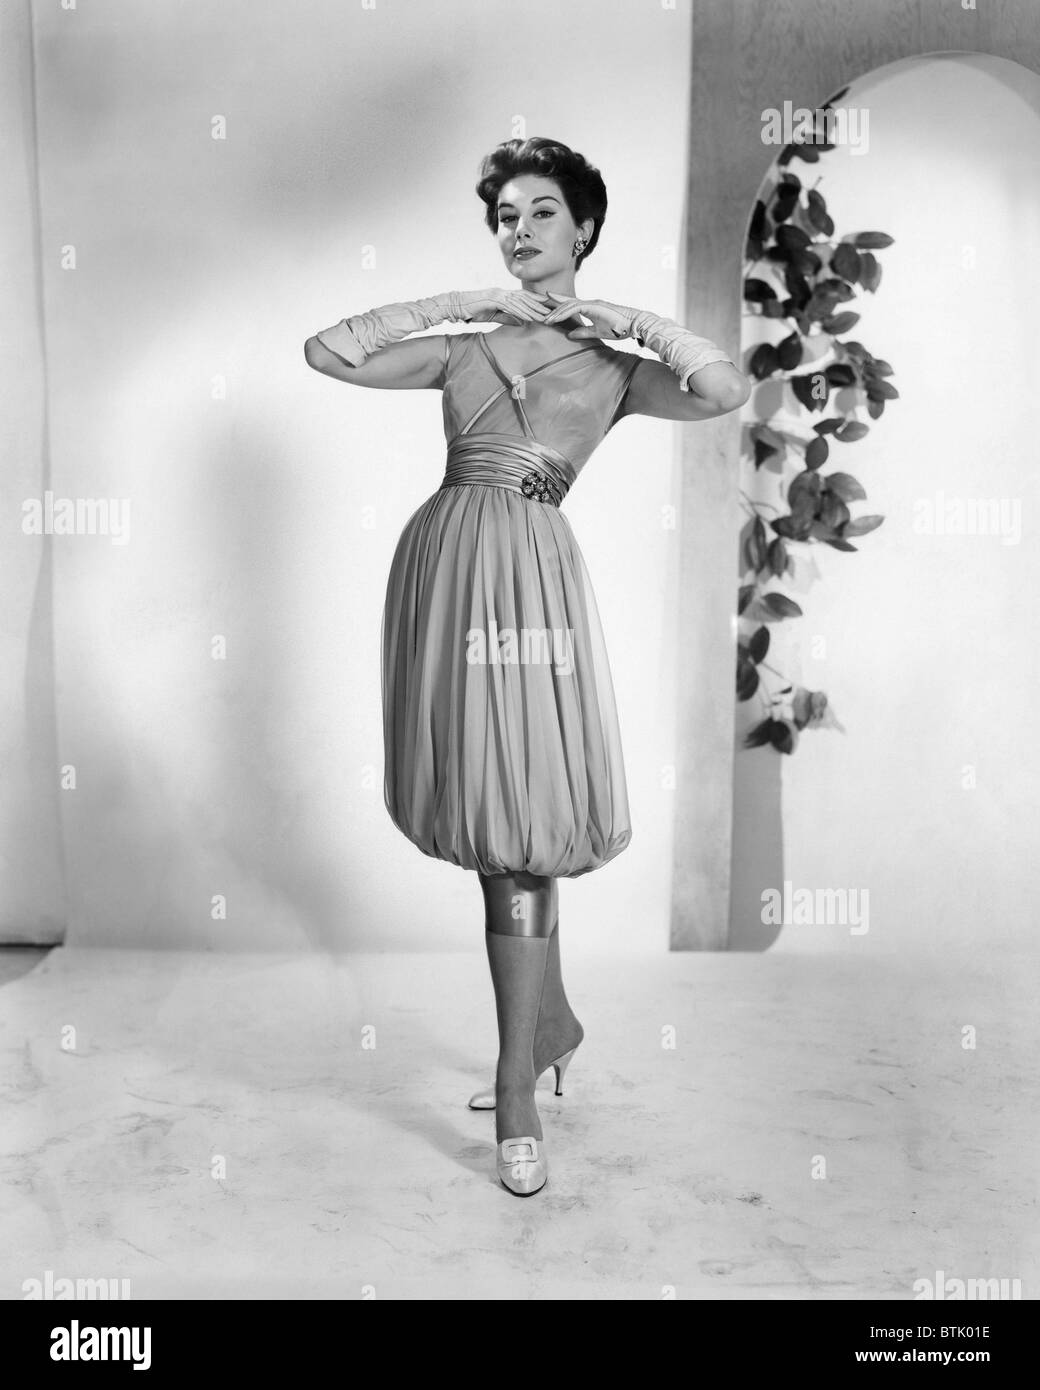 1950s Fashion Stock Photos & 1950s Fashion Stock Images ...